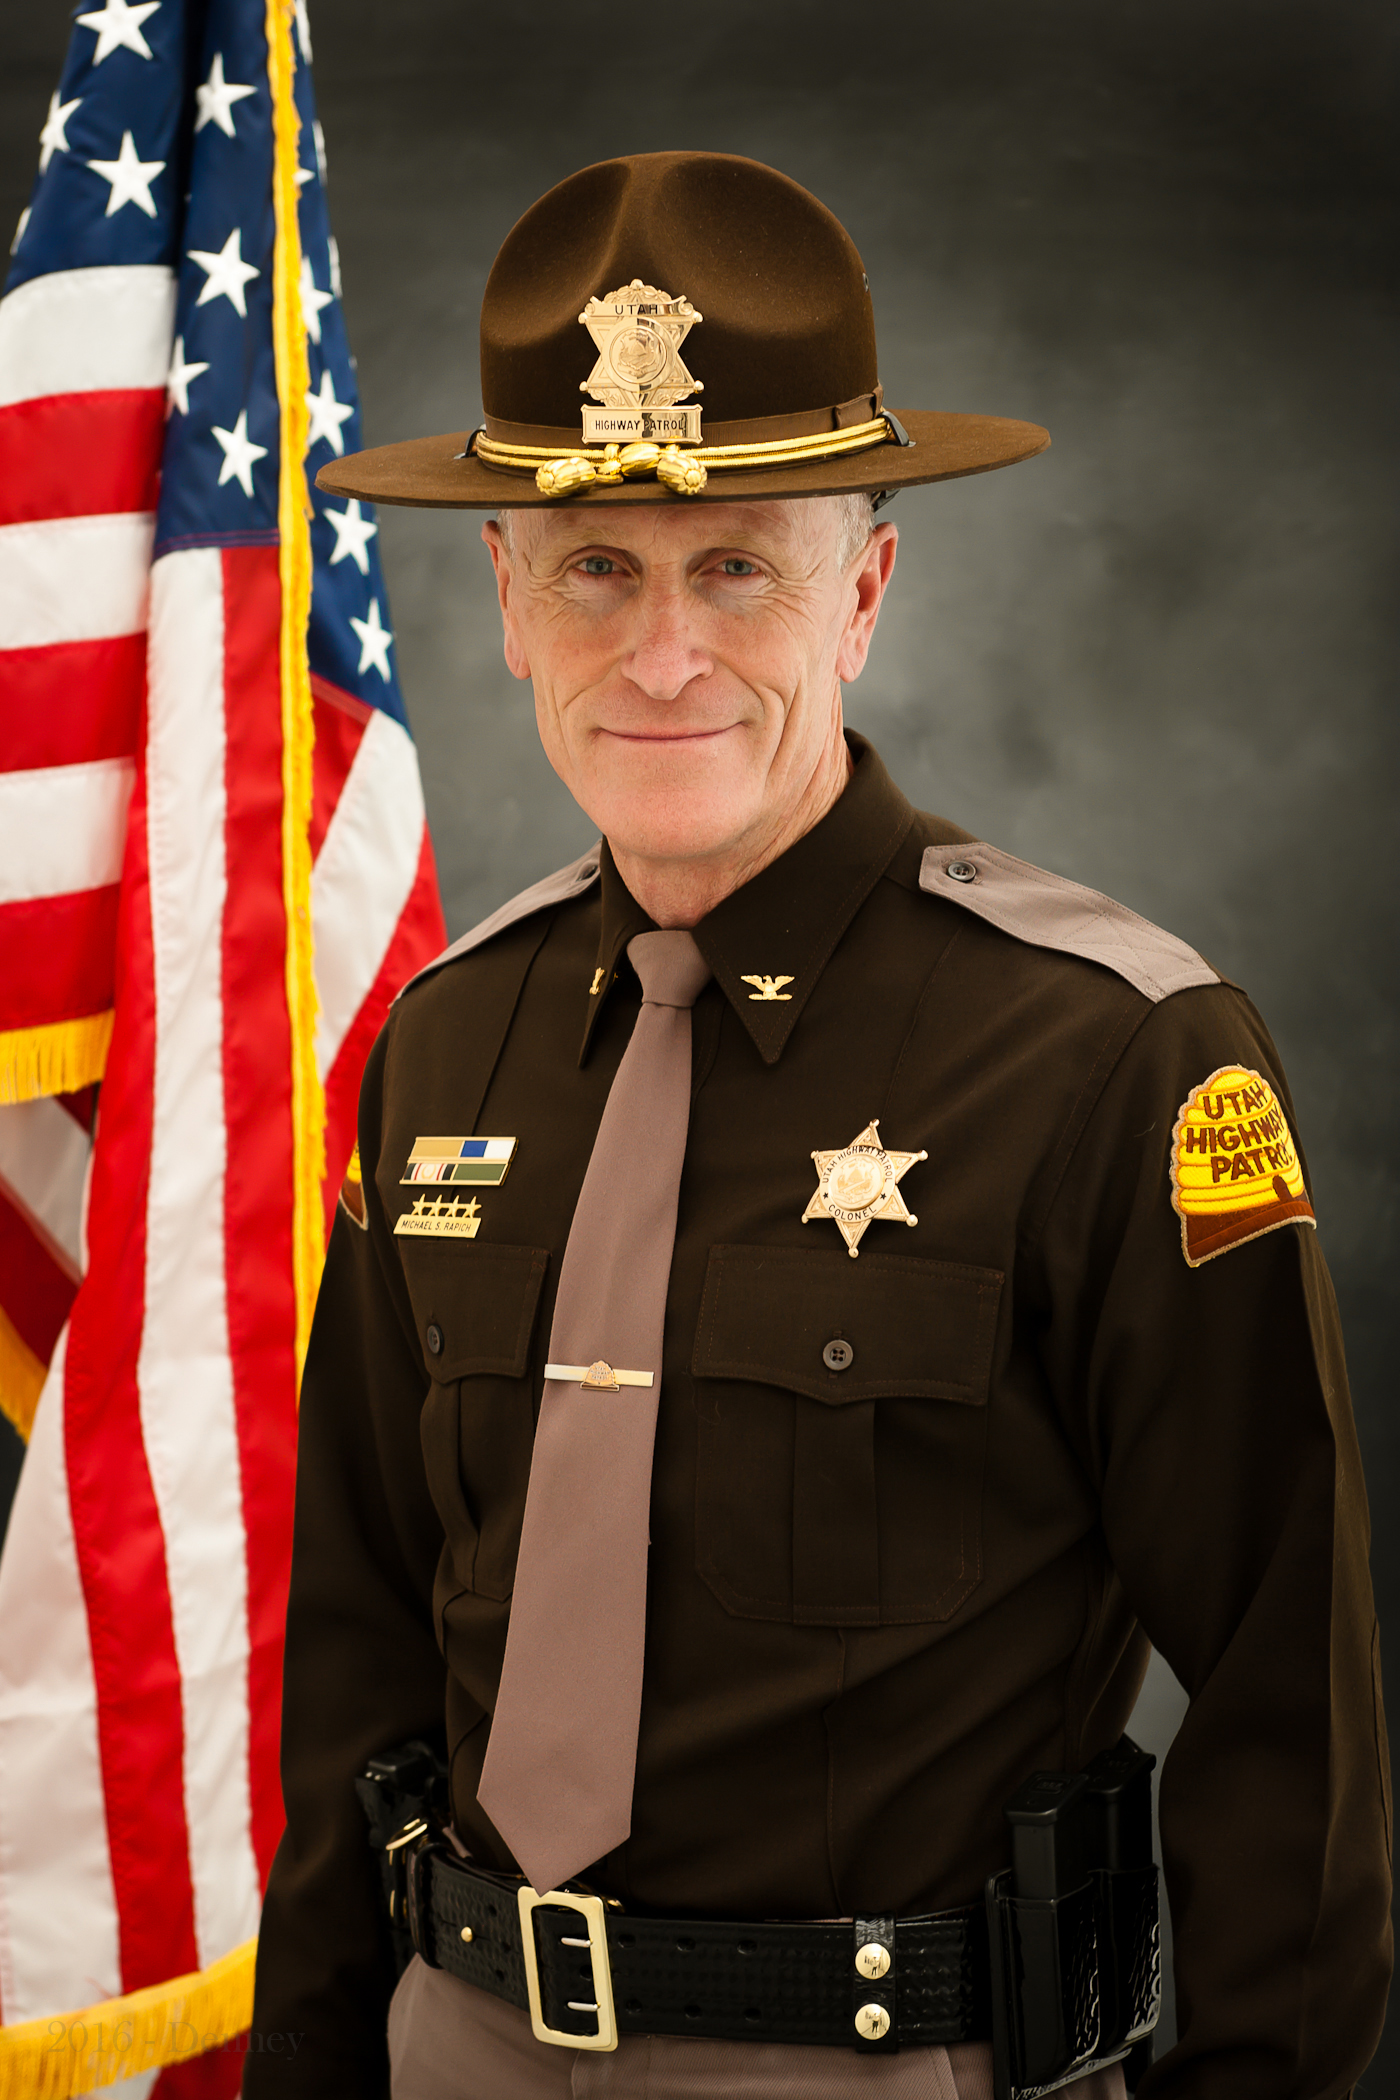 Superintendent of the Utah Highway Patrol